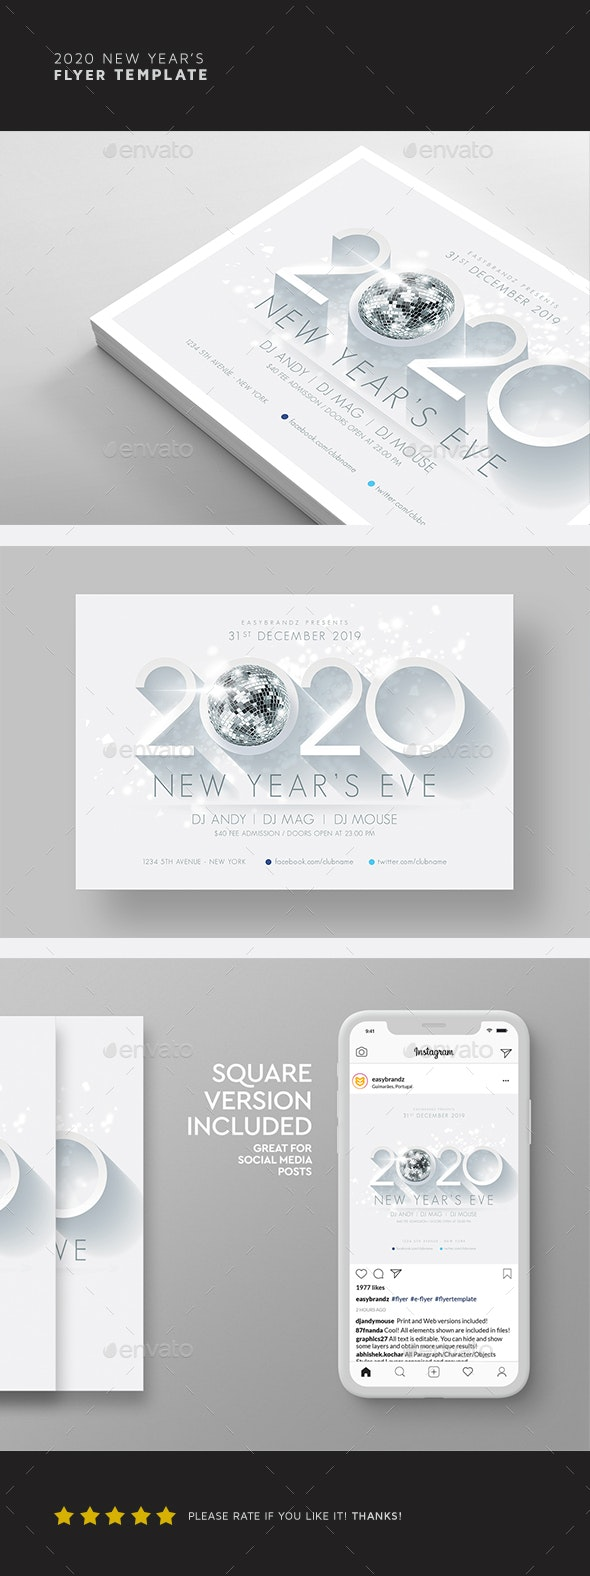 2020 New Year's Flyer Template - Holidays Events